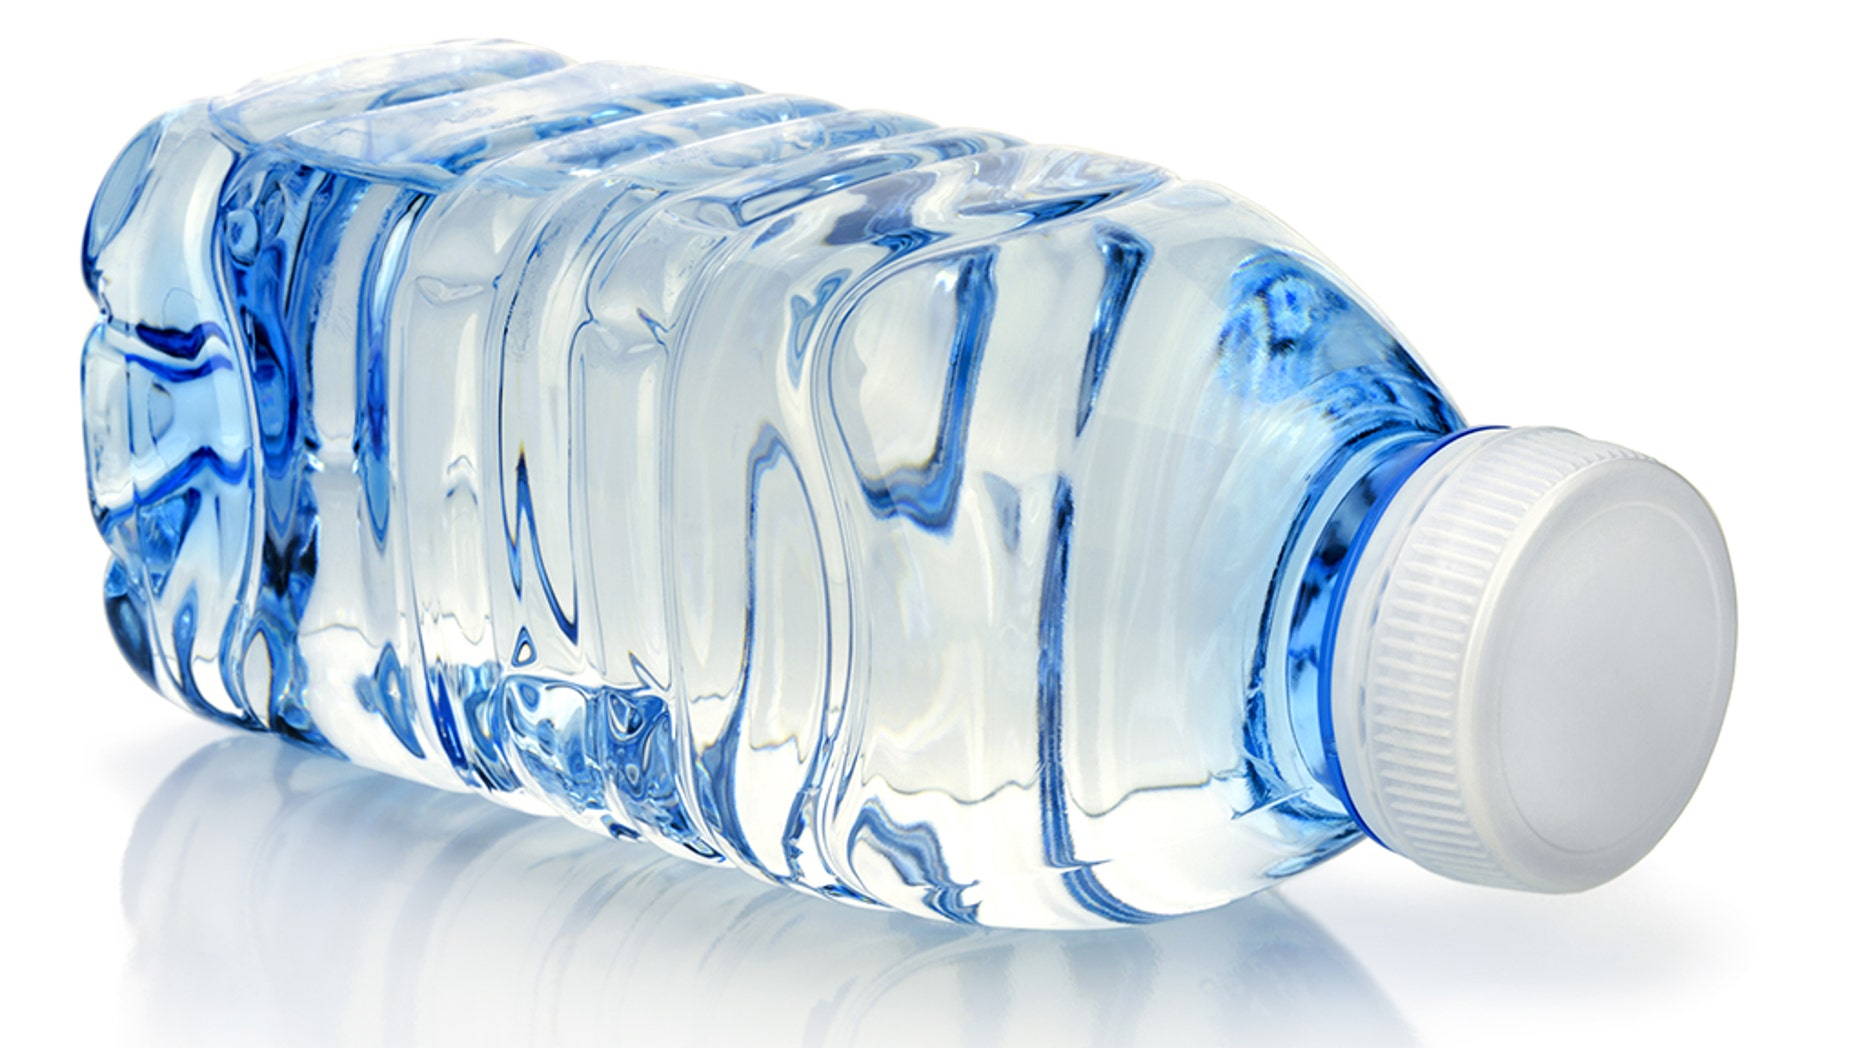 A 13-year-old girl in Washington state was reportedly hospitalized Saturday after a plastic bottle exploded in her hands.